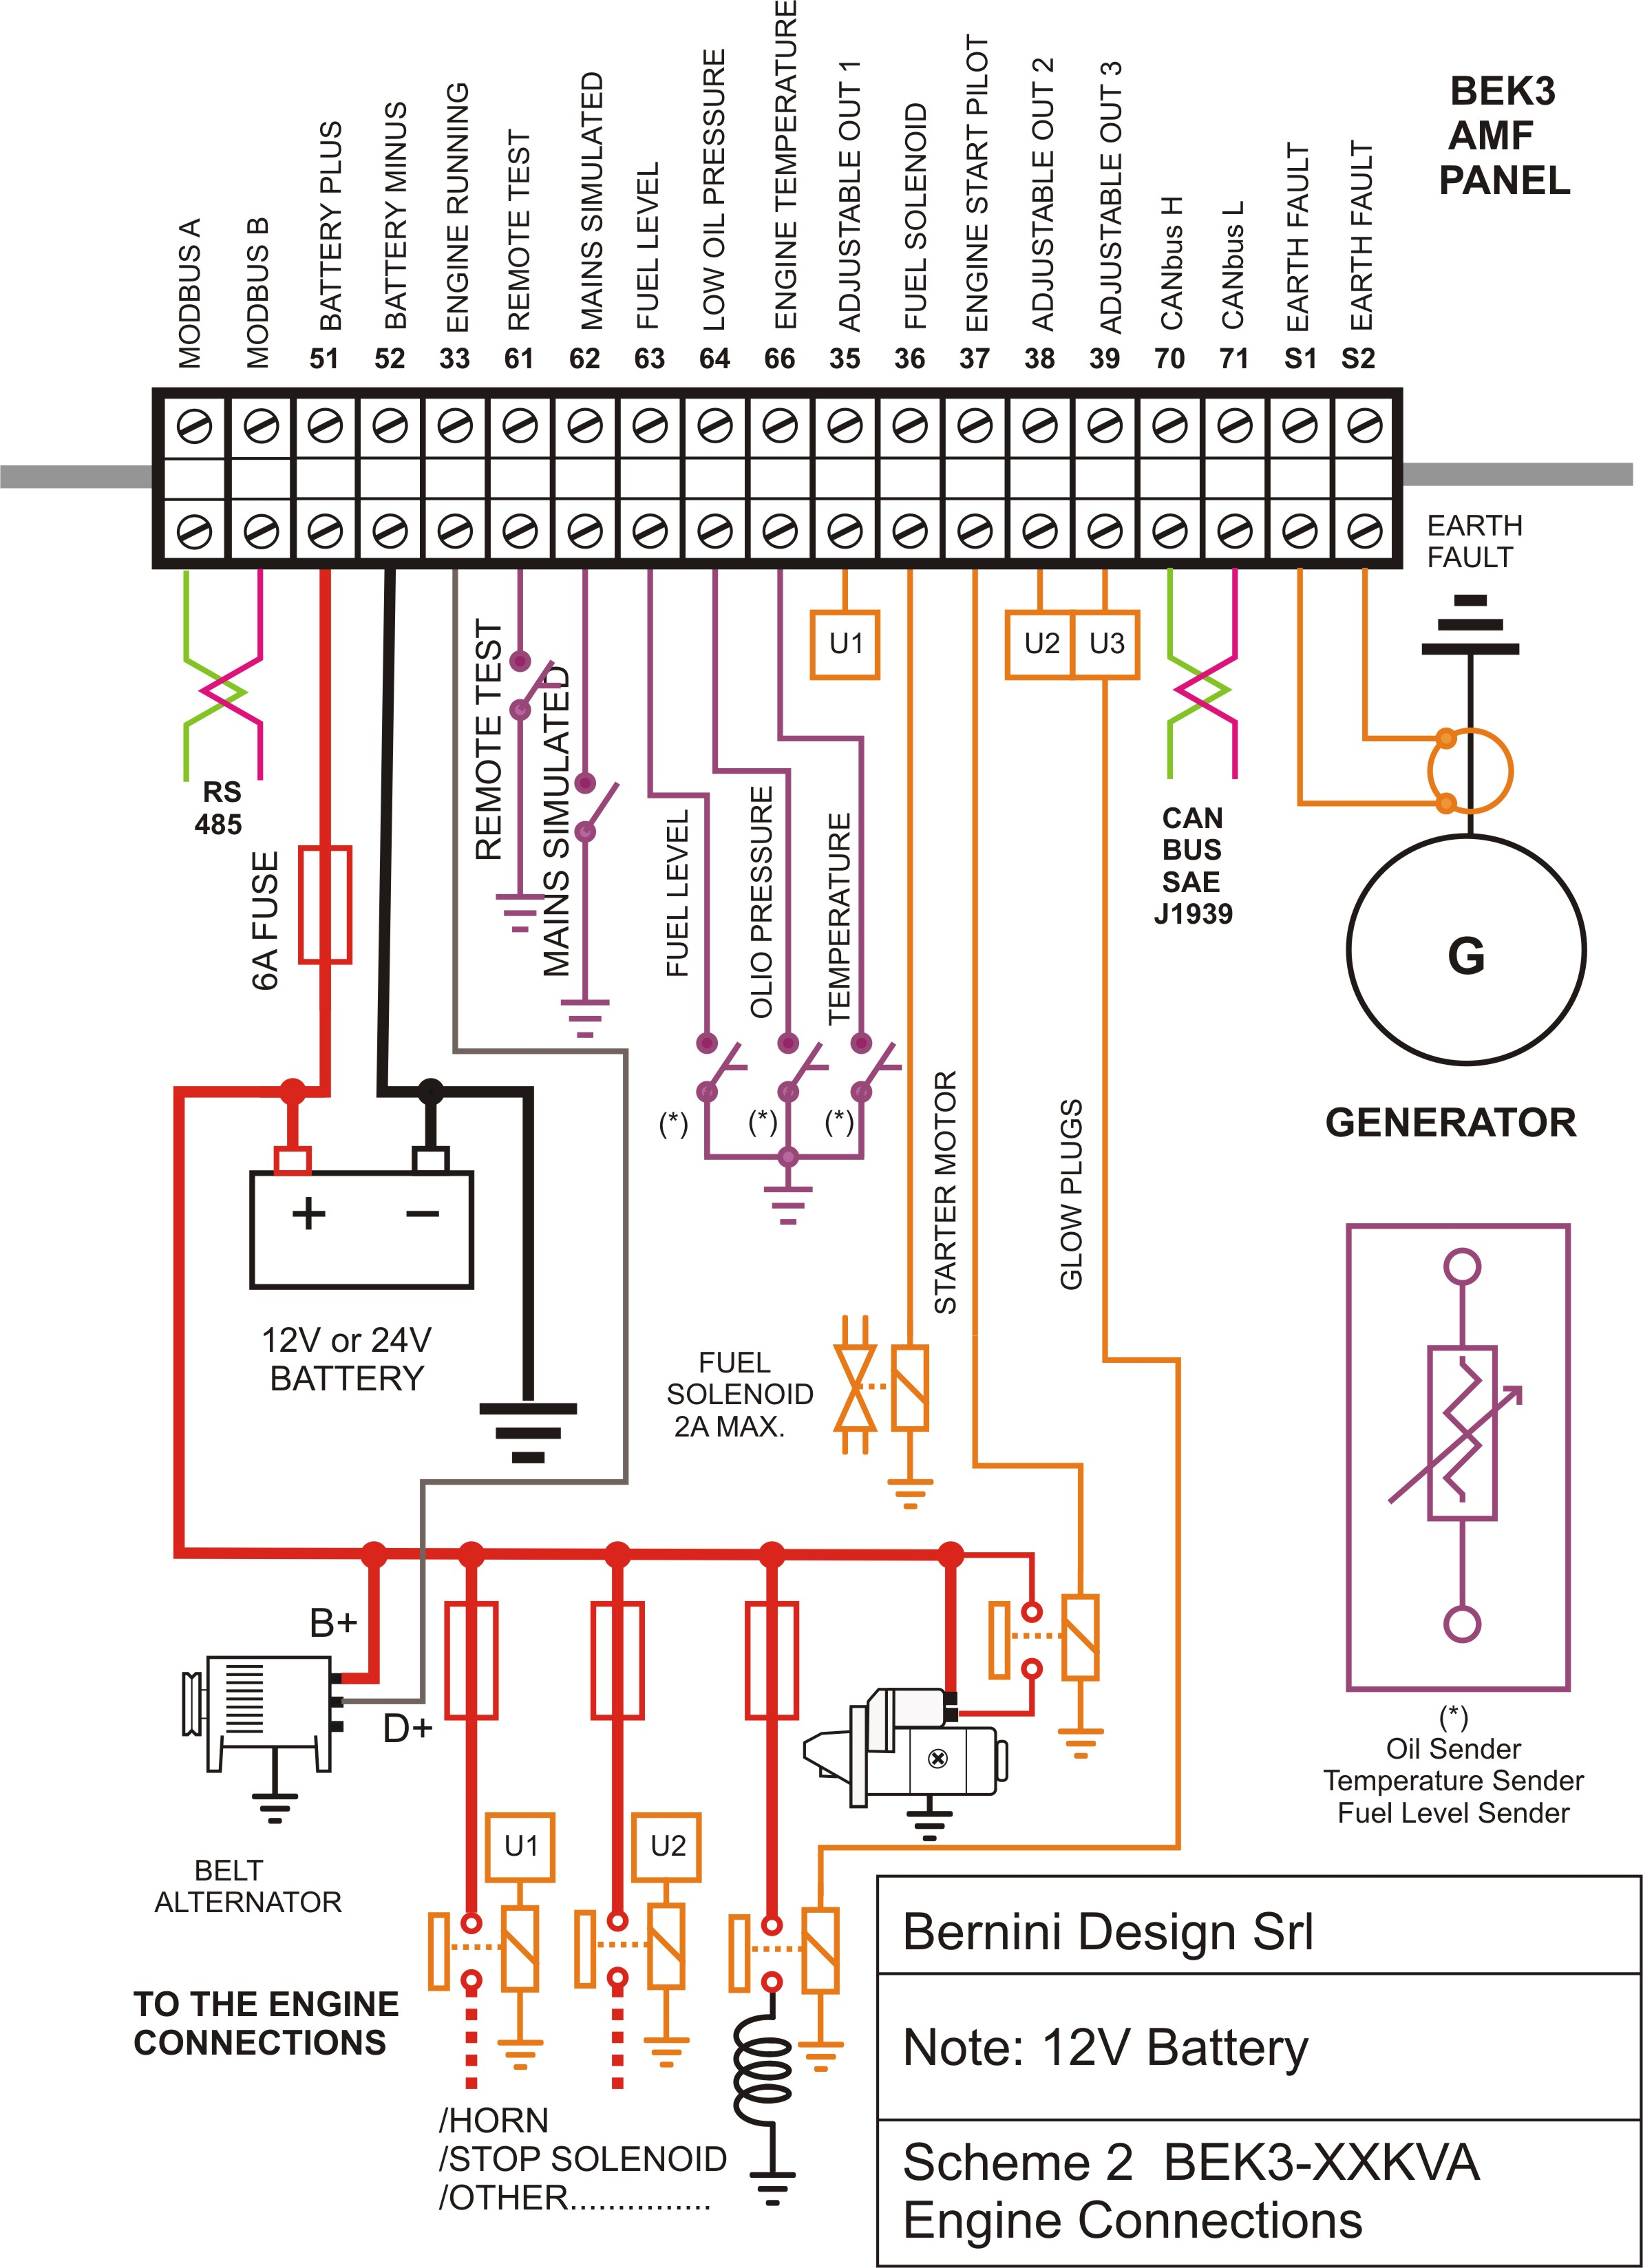 Diesel Generator Control Panel Wiring Diagram Engine Connections?resized665%2C9186ssld1 caterpillar generator schematic diagram efcaviation com Caterpillar SR4B Model Specification Sheet at gsmx.co